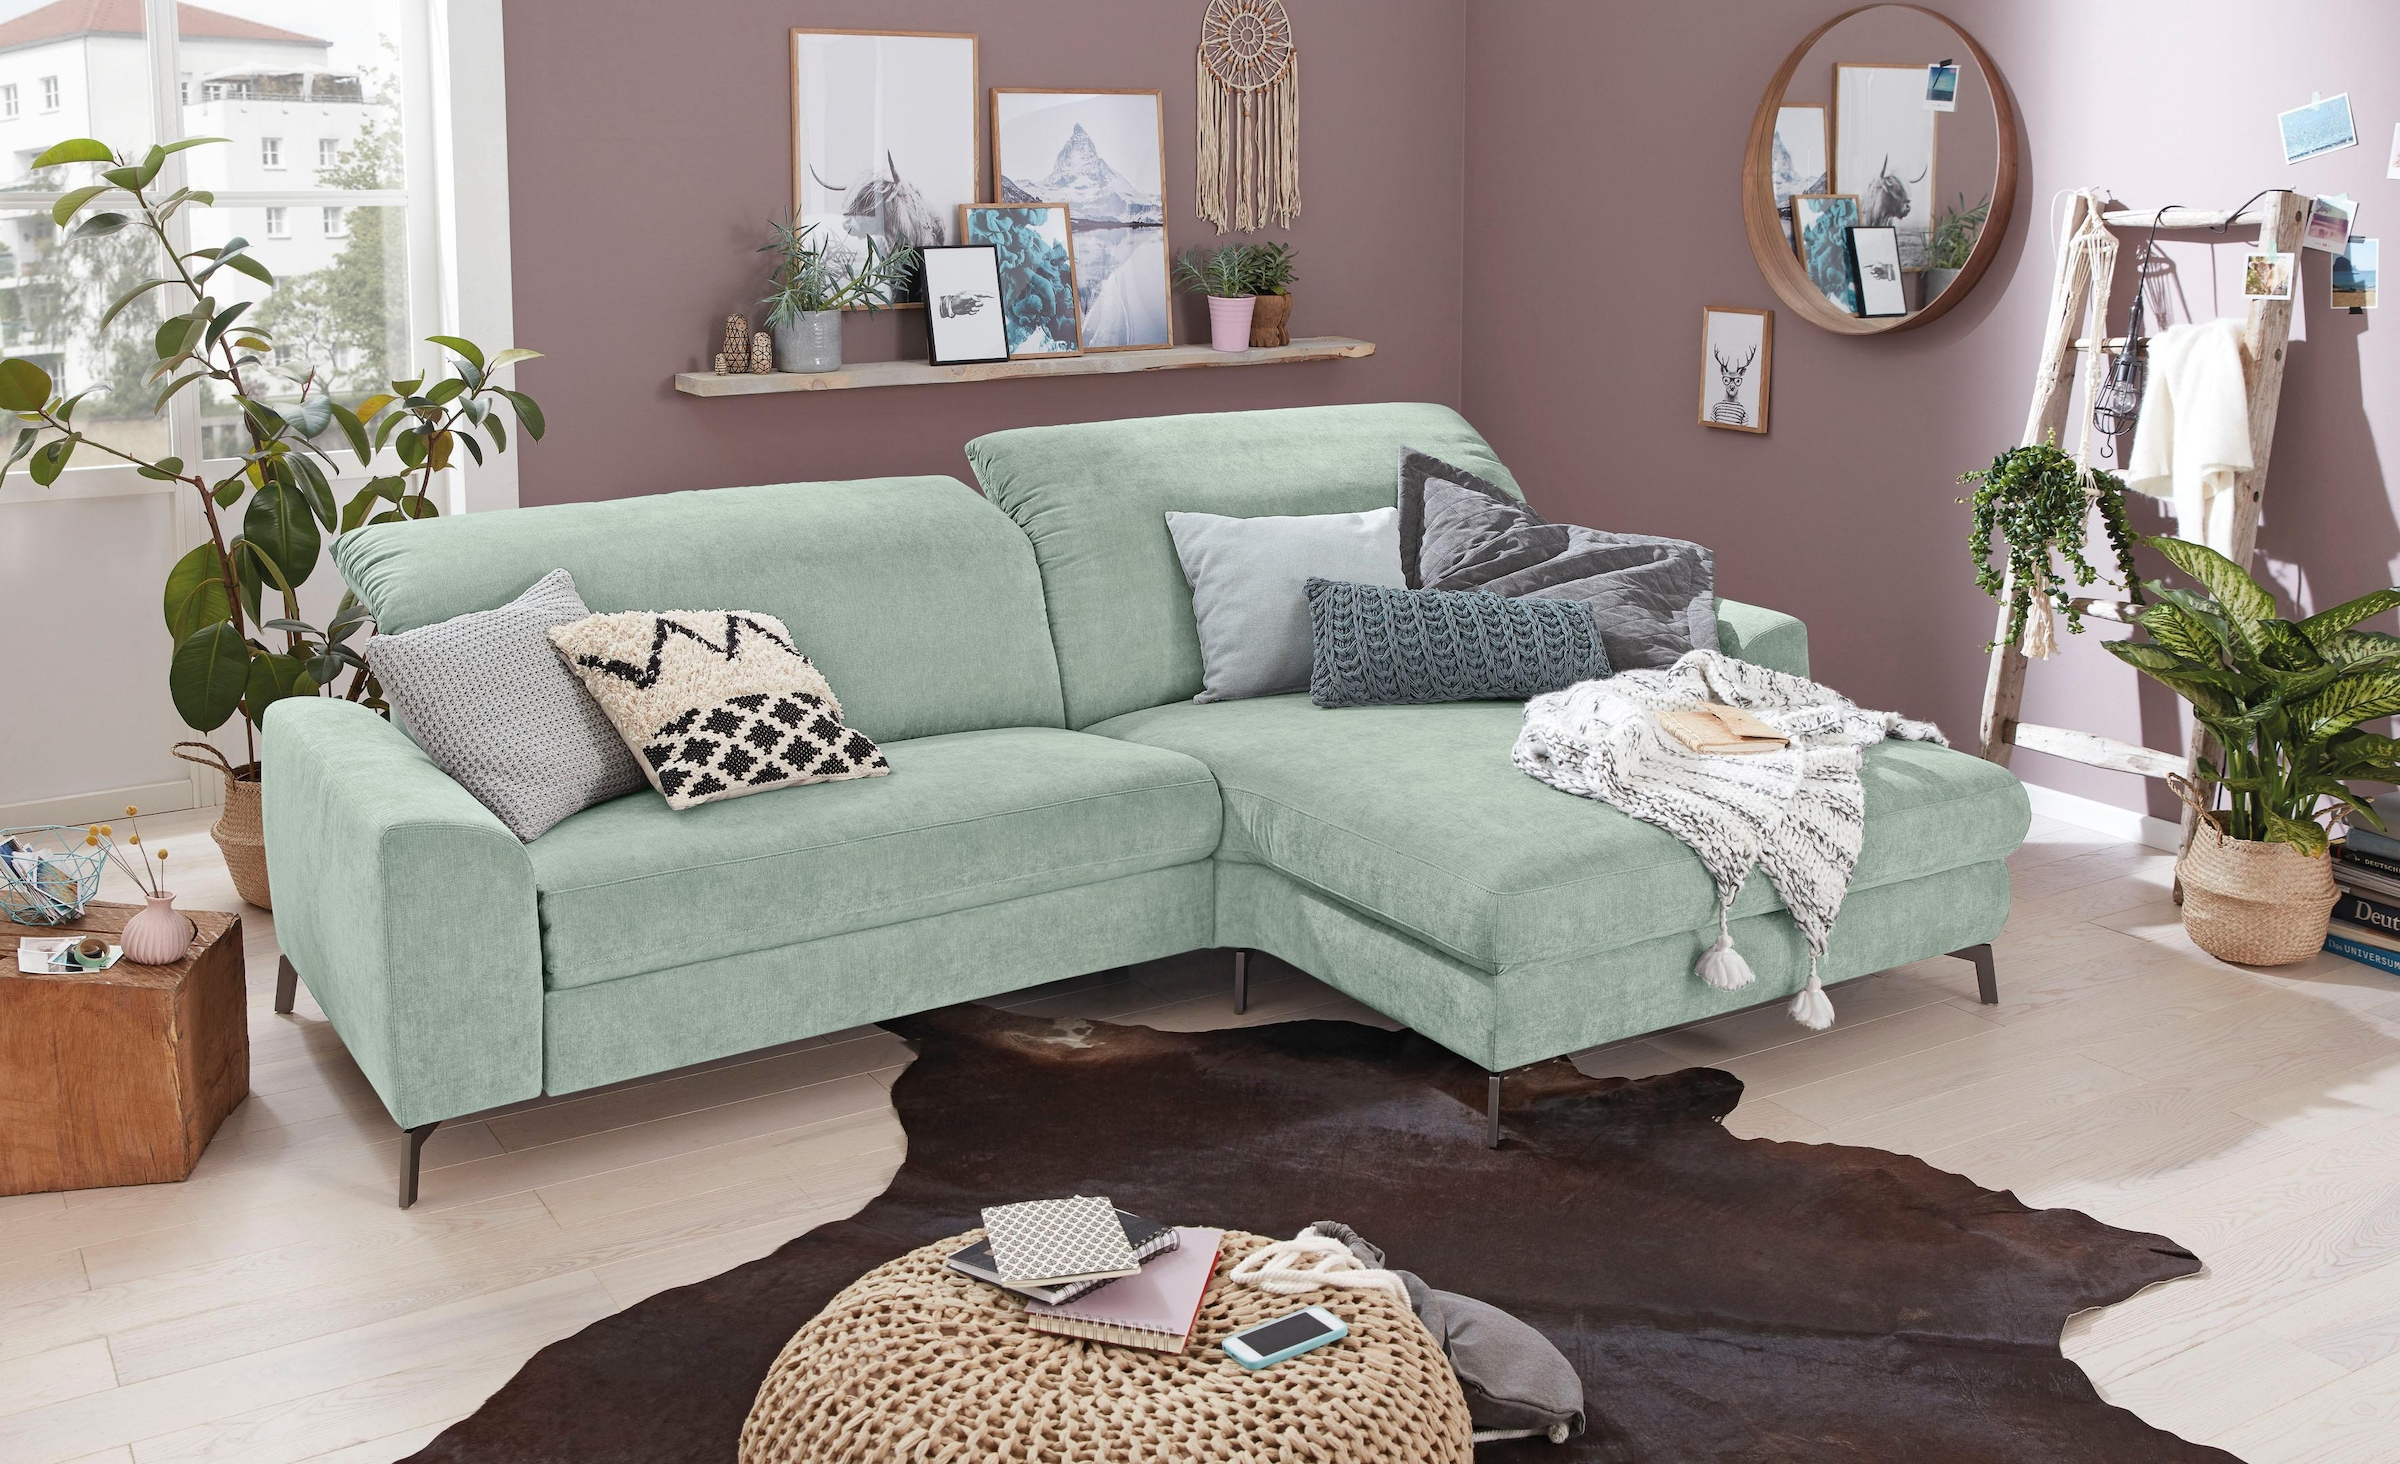 Musterring Ledersofa Set One By Musterring Ecksofa »so 5400« Bestellen | Baur